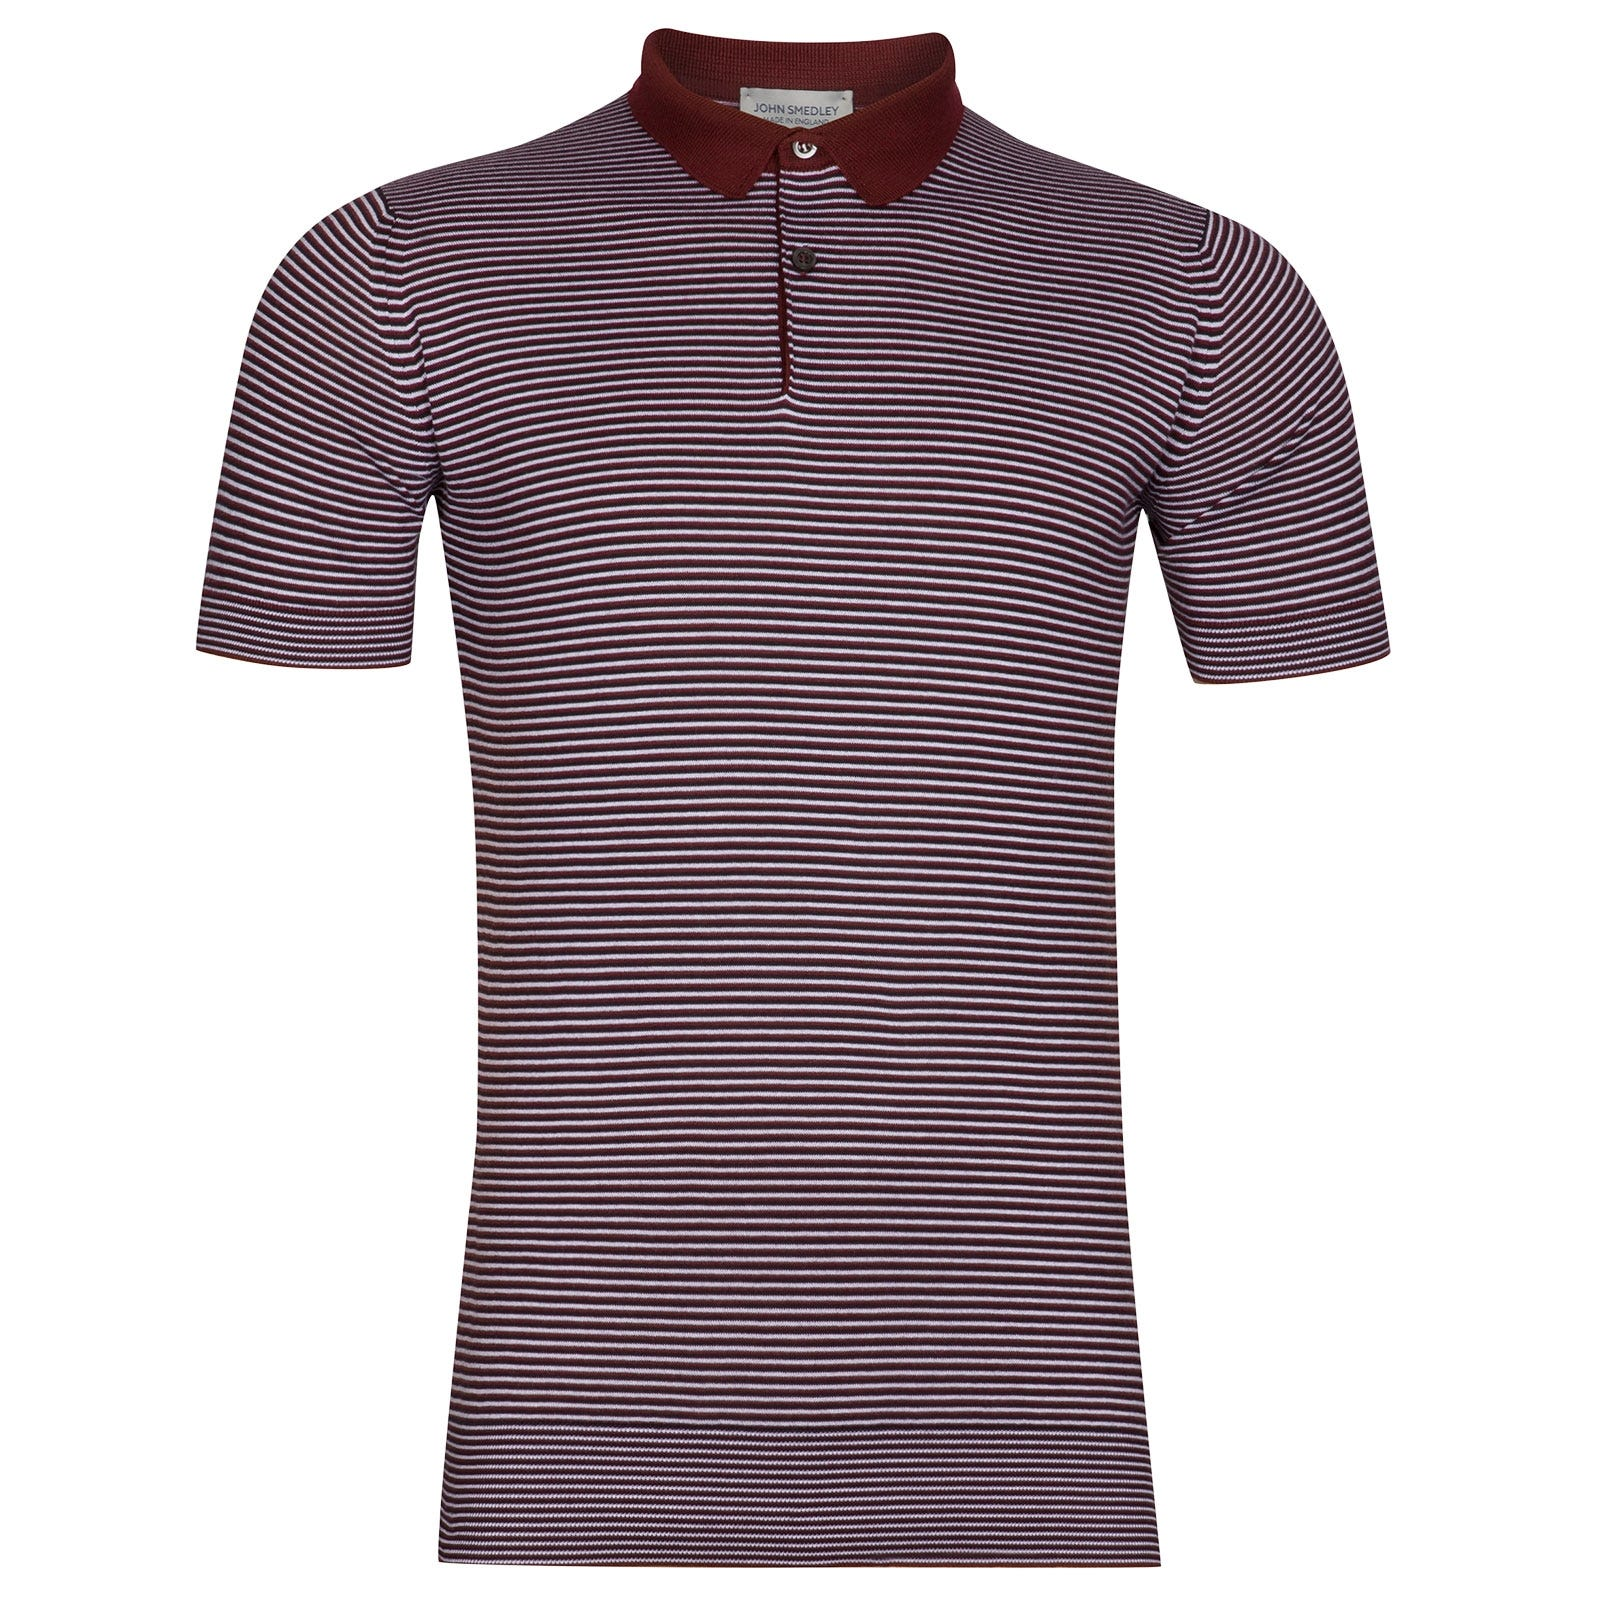 John Smedley Etton Sea Island Cotton Shirt in Burgundy Grain-M